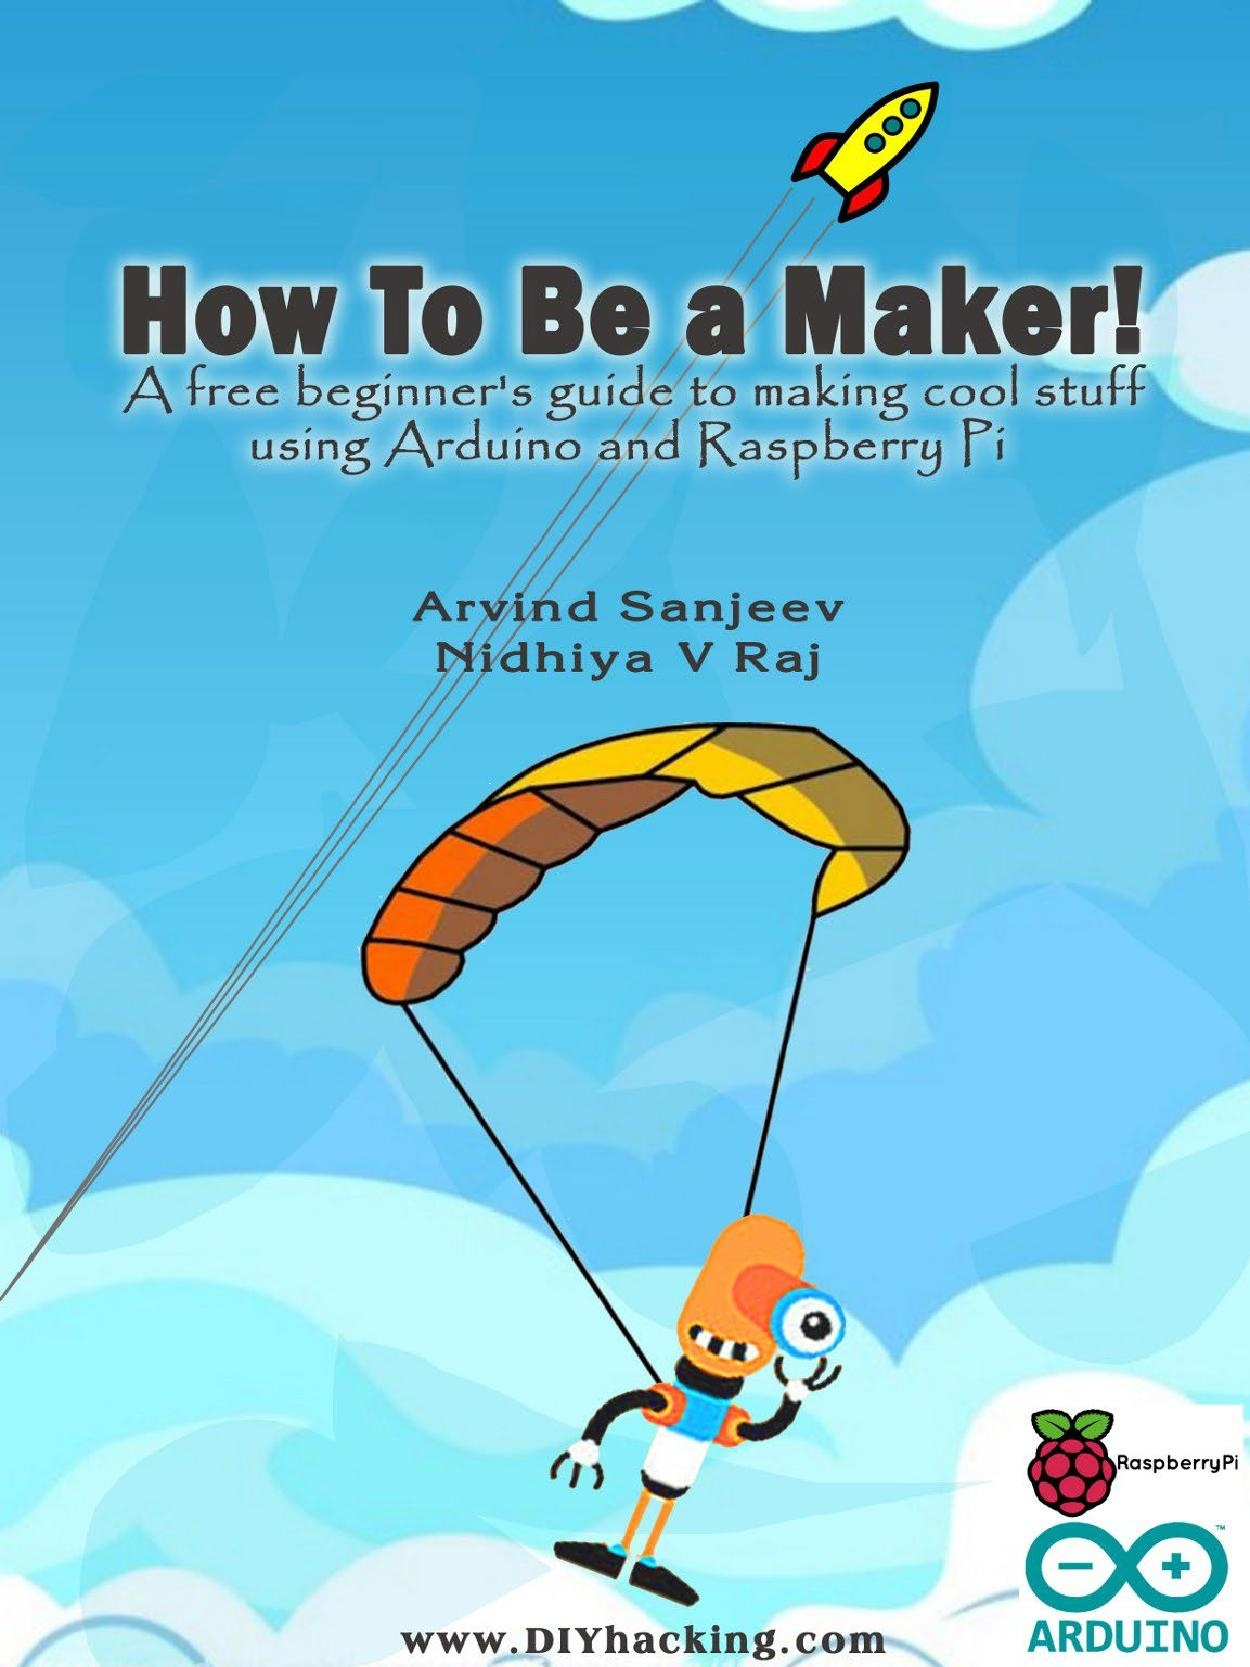 File:How To Be a Maker! pdf - Wikimedia Commons